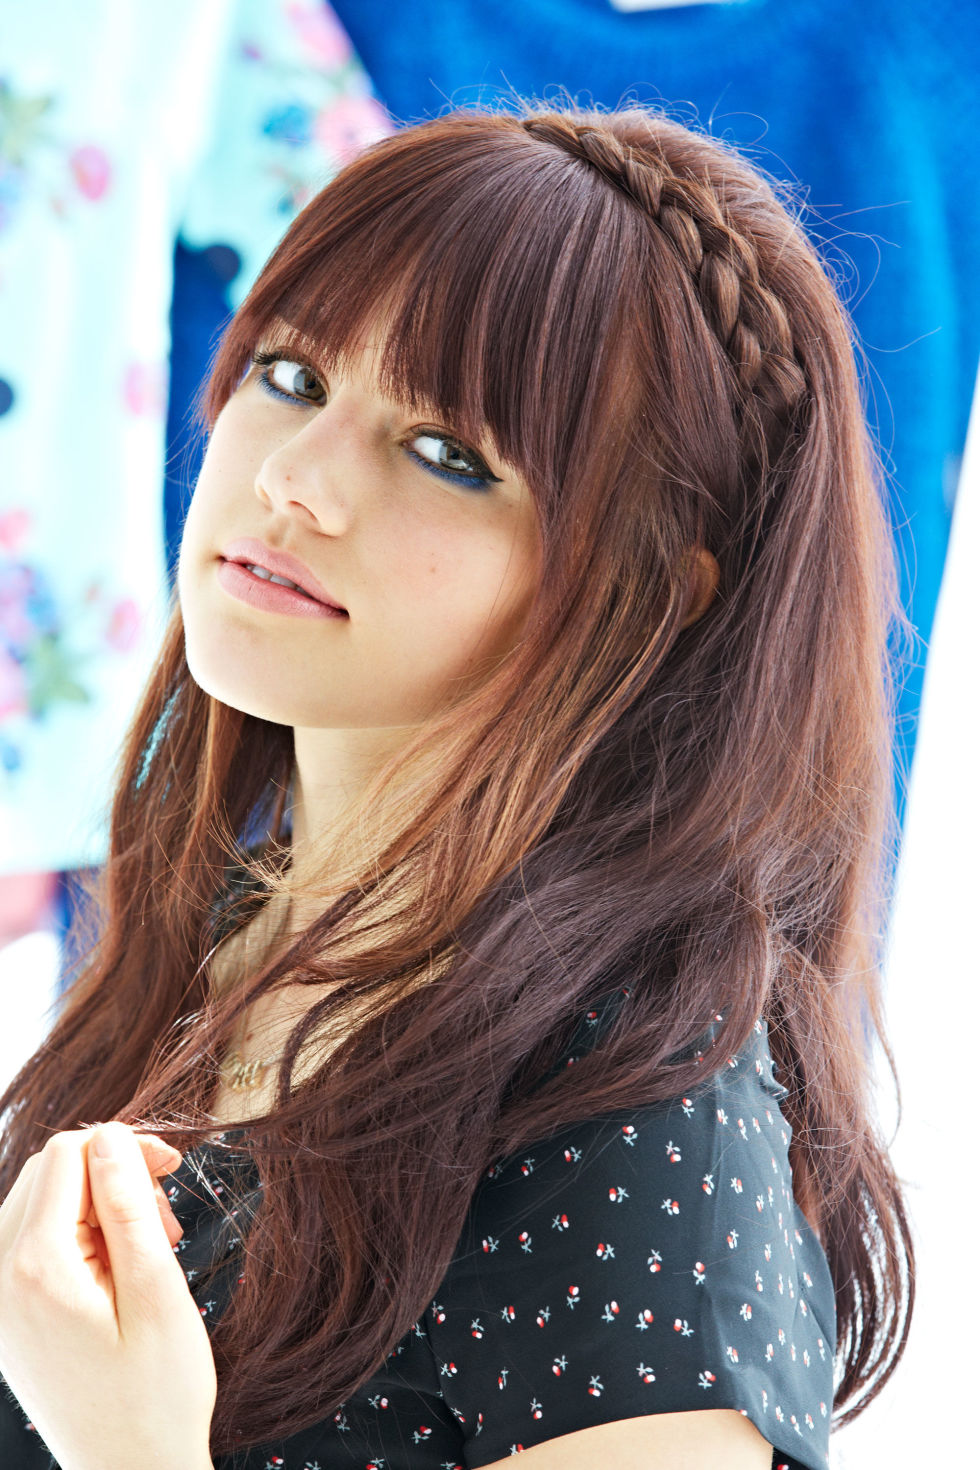 Admirable 7 Hairstyles With Bangs In 2016 How To Style Bangs Short Hairstyles Gunalazisus